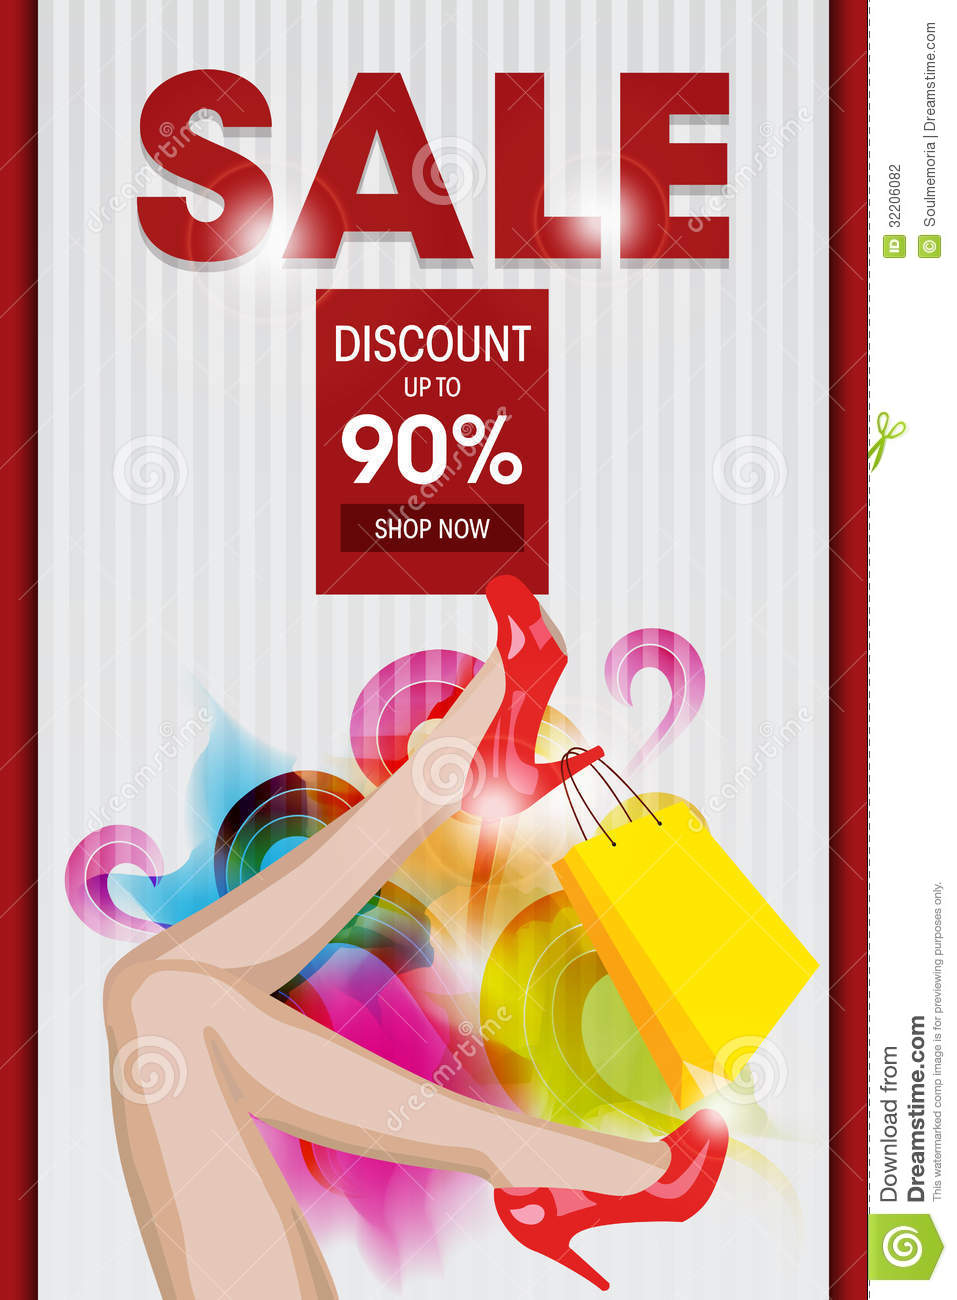 Sale Discount Ad Template Stock Photography - Image: 32206082